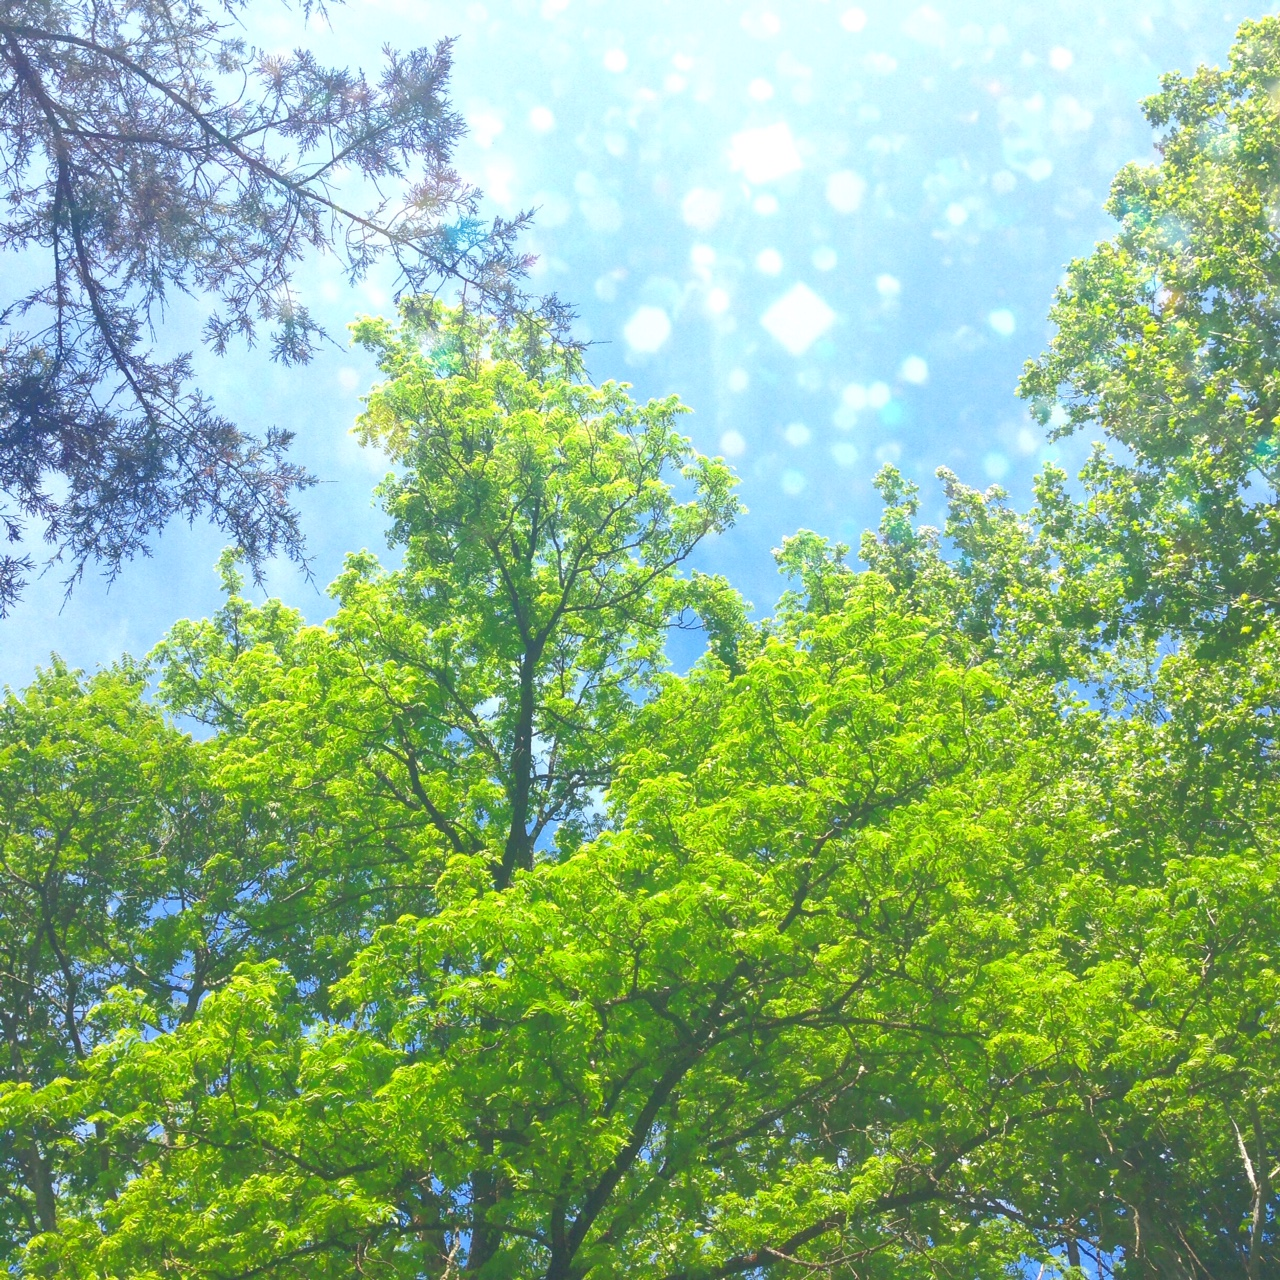 A glimpse of the canopy in my yard.